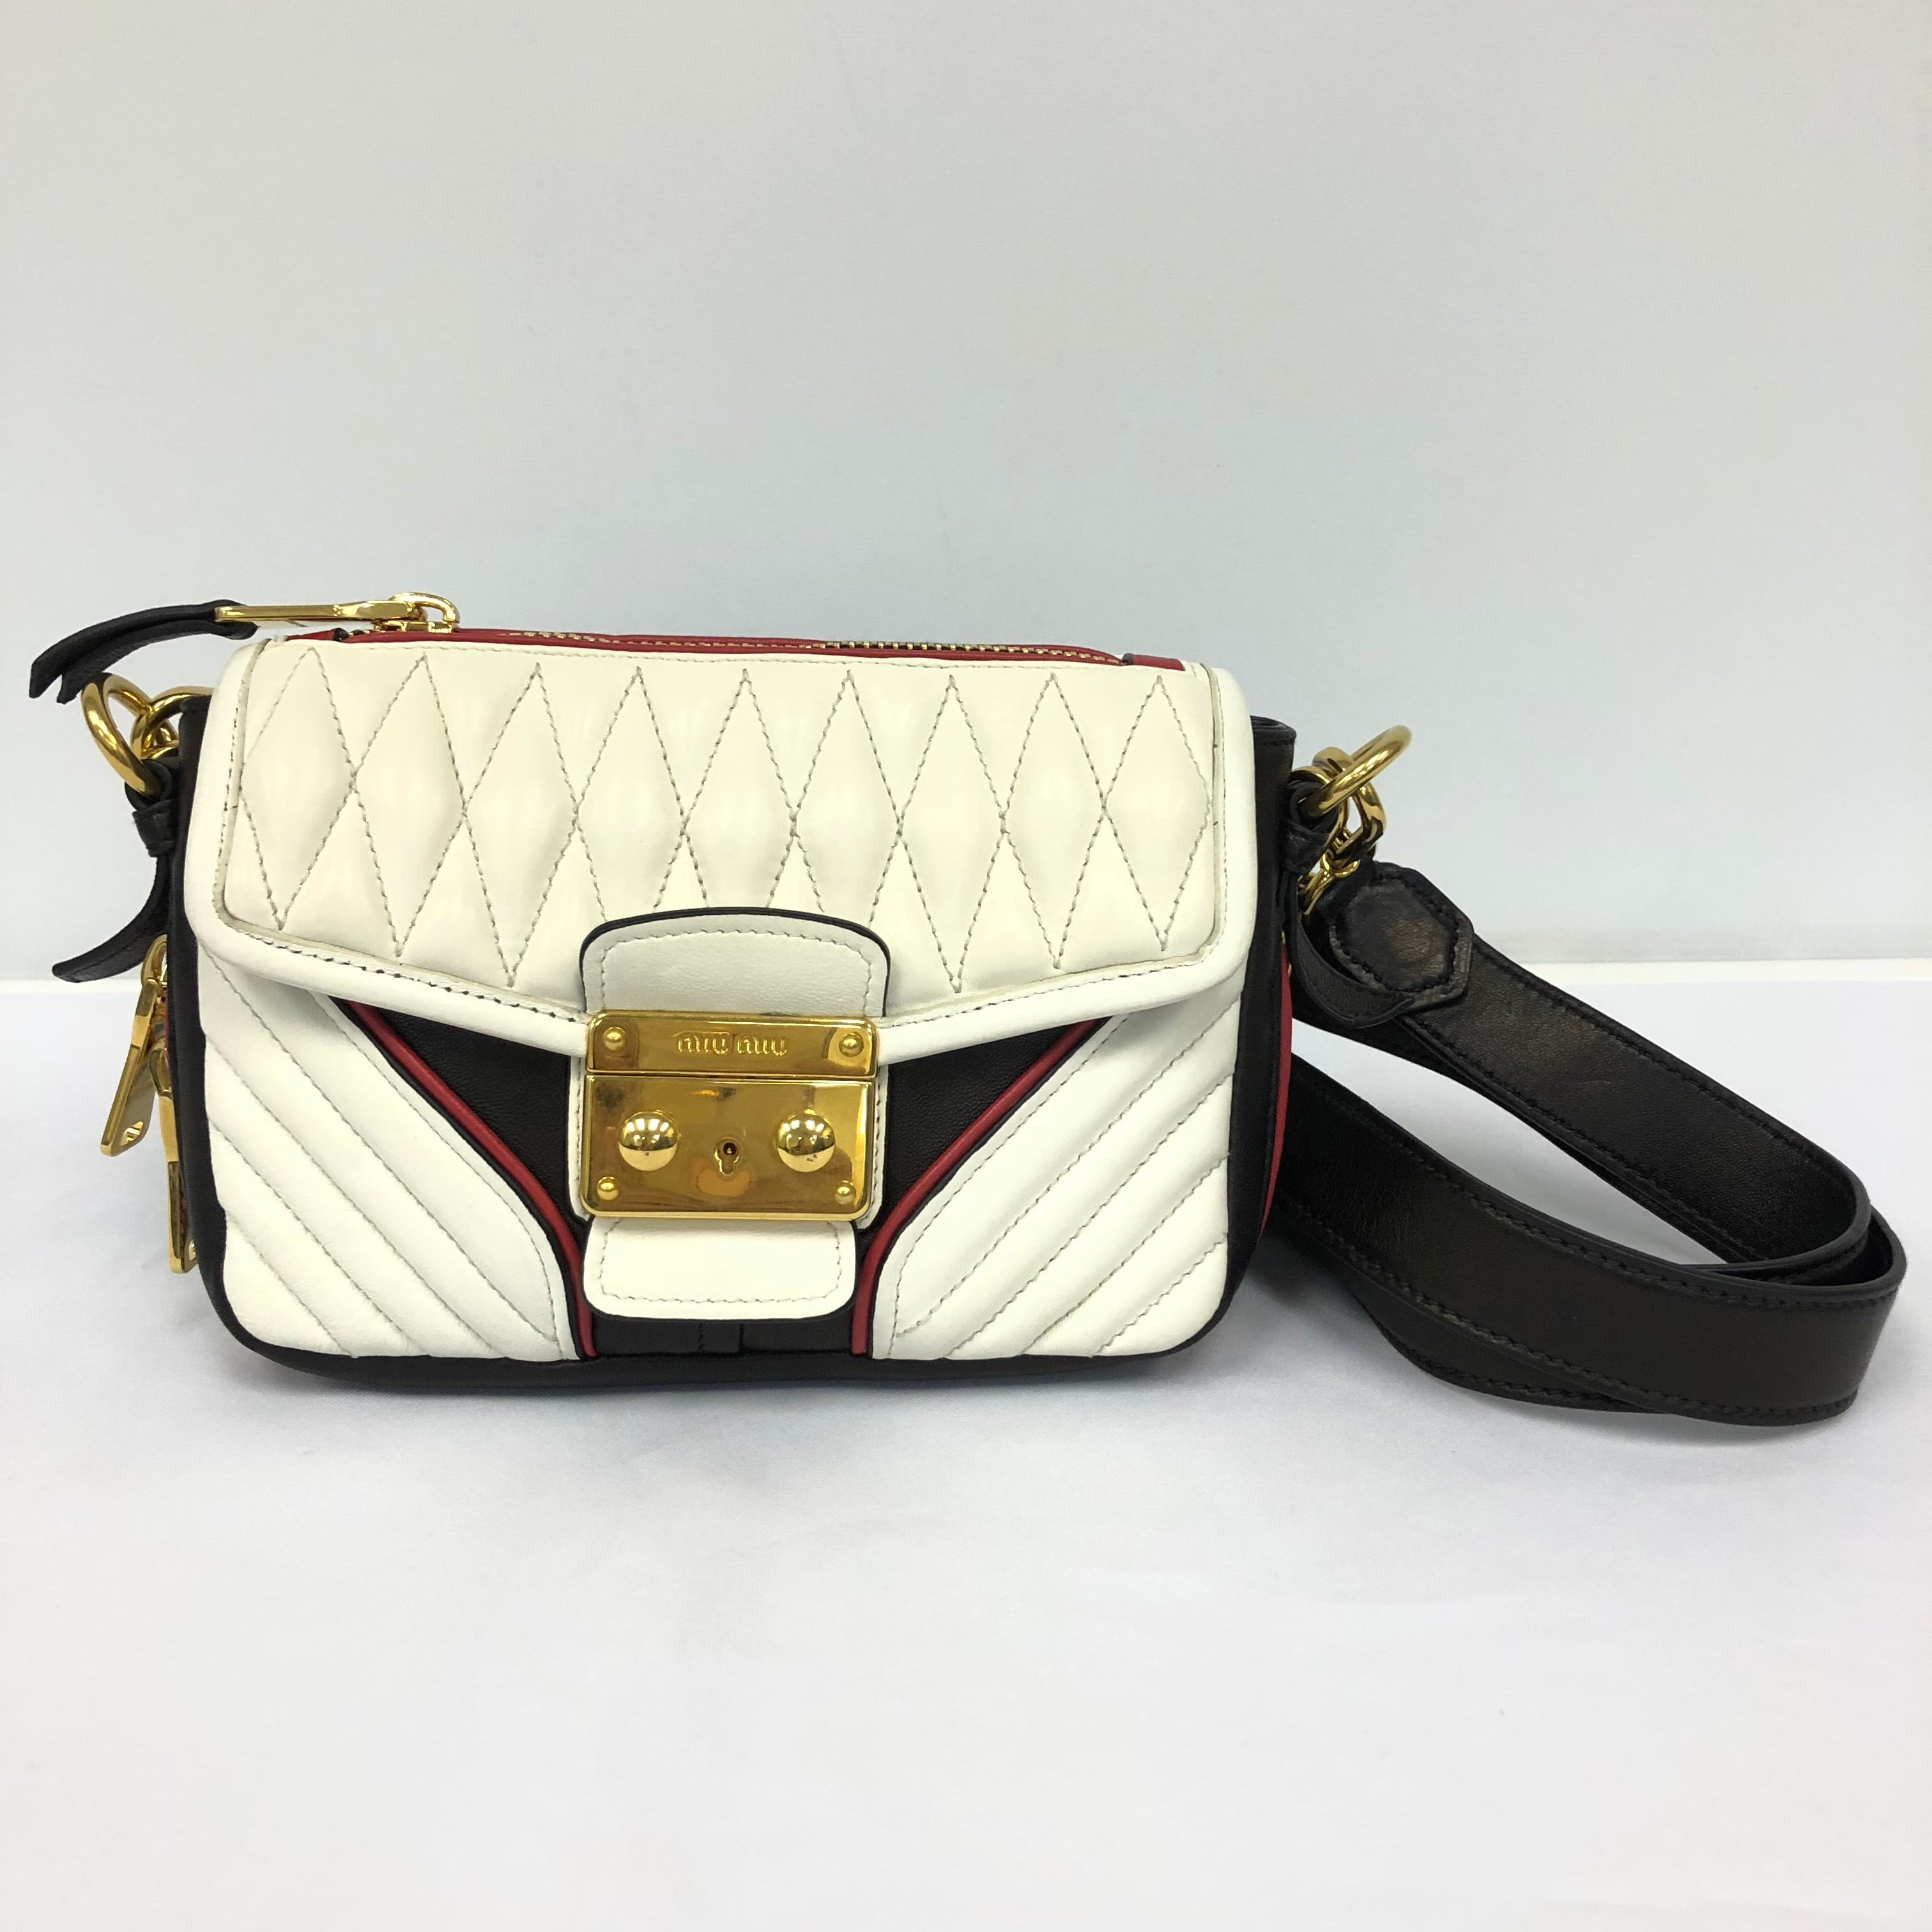 Miu Miu White Colorblocked Matelasse Leather Biker Bag